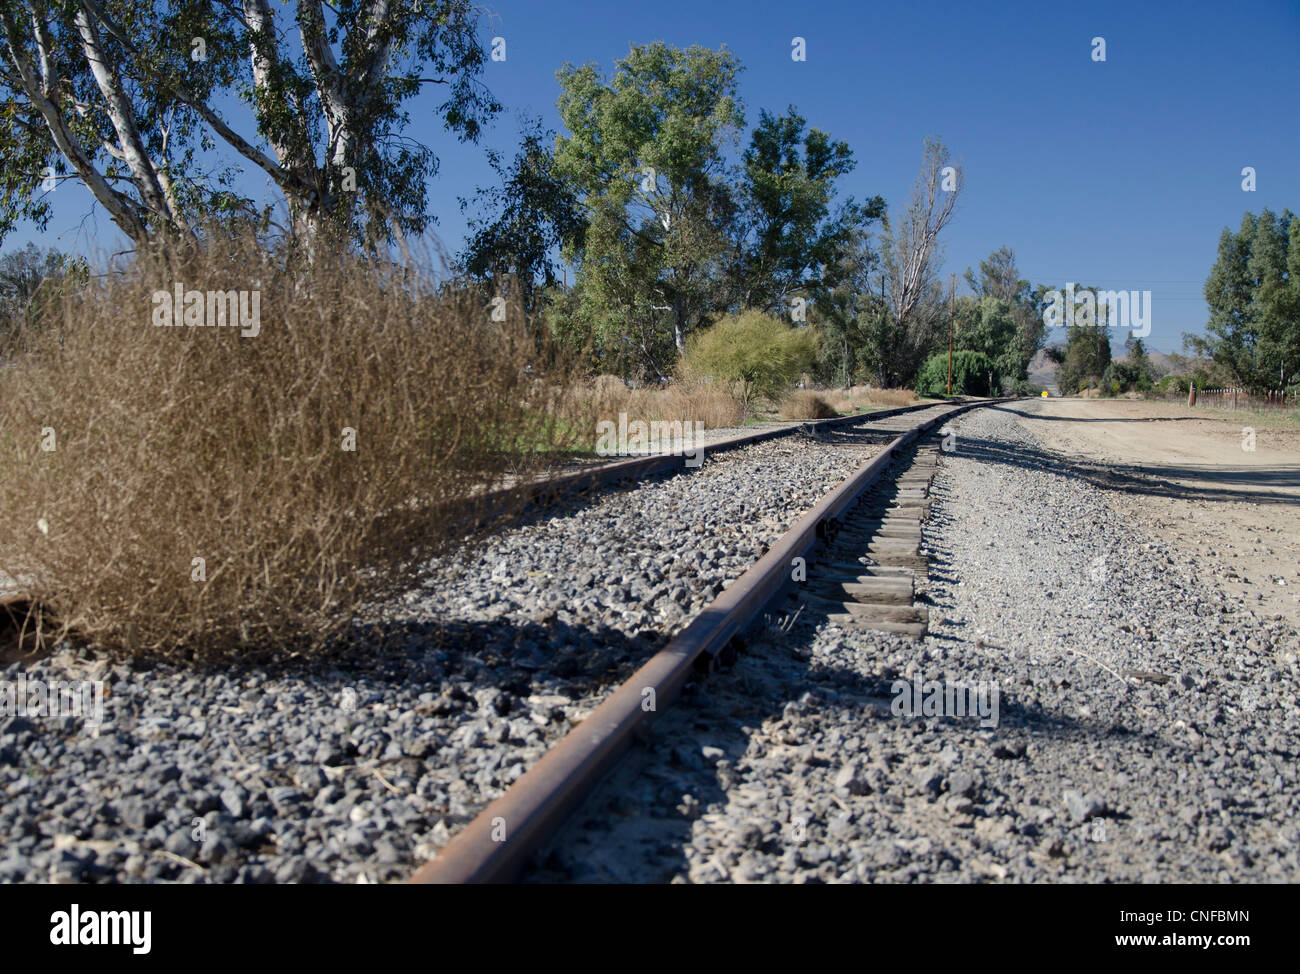 Old, Abandoned Railroad Tracks disappear in the distance. A Tumbleweed rests on the road bed. Trees line the tracks. - Stock Image